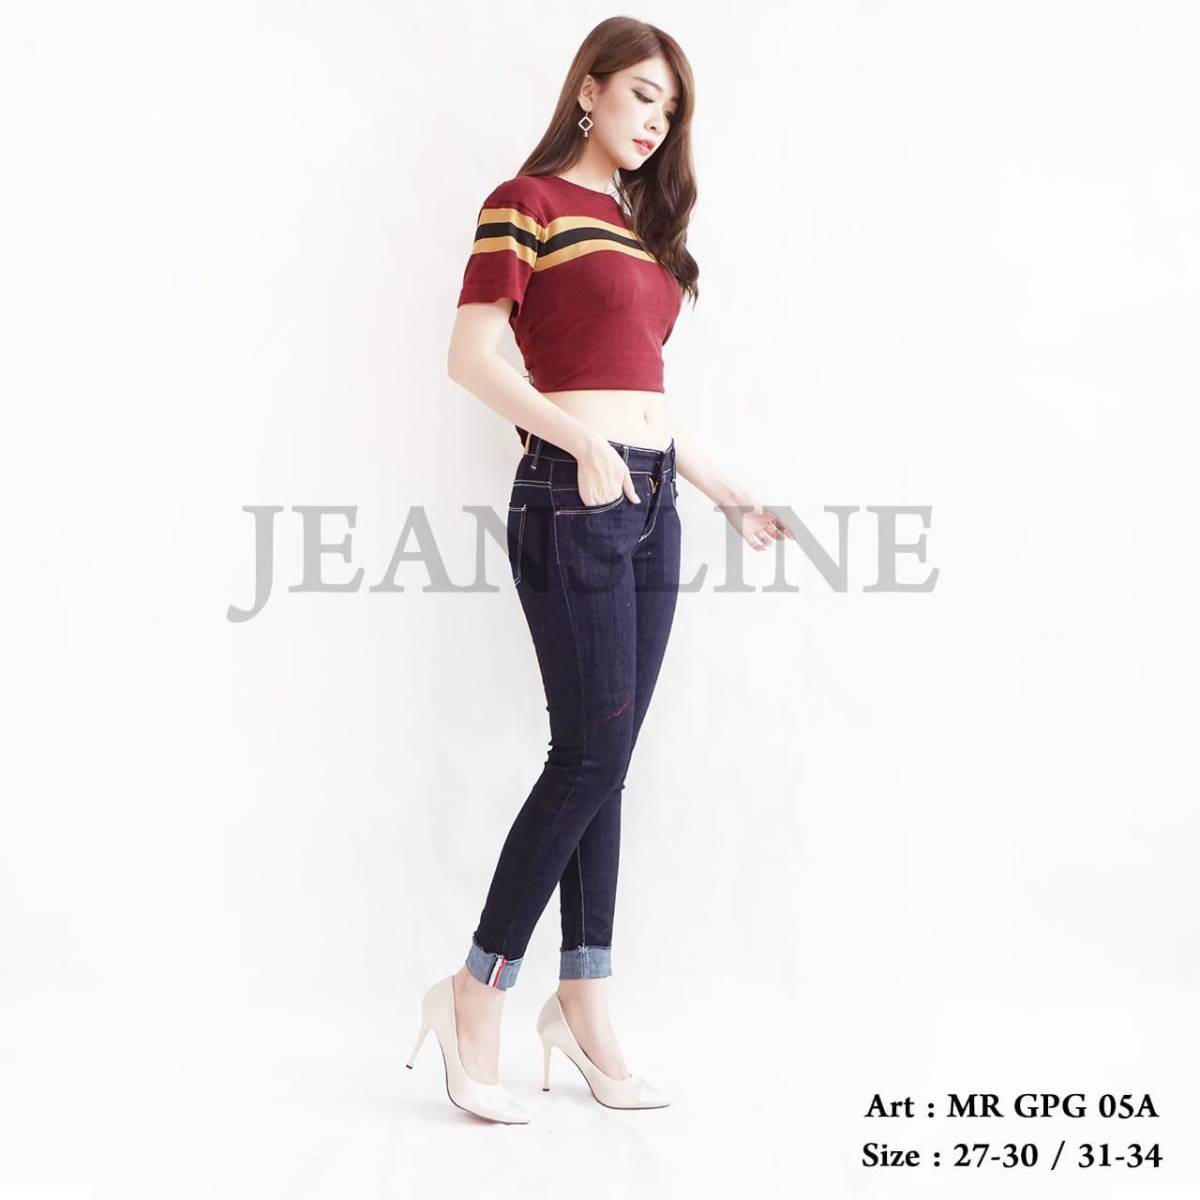 Celana Panjang Jeans Ladies (mr Gpg 05a) - Size 31, 32, 33, 341